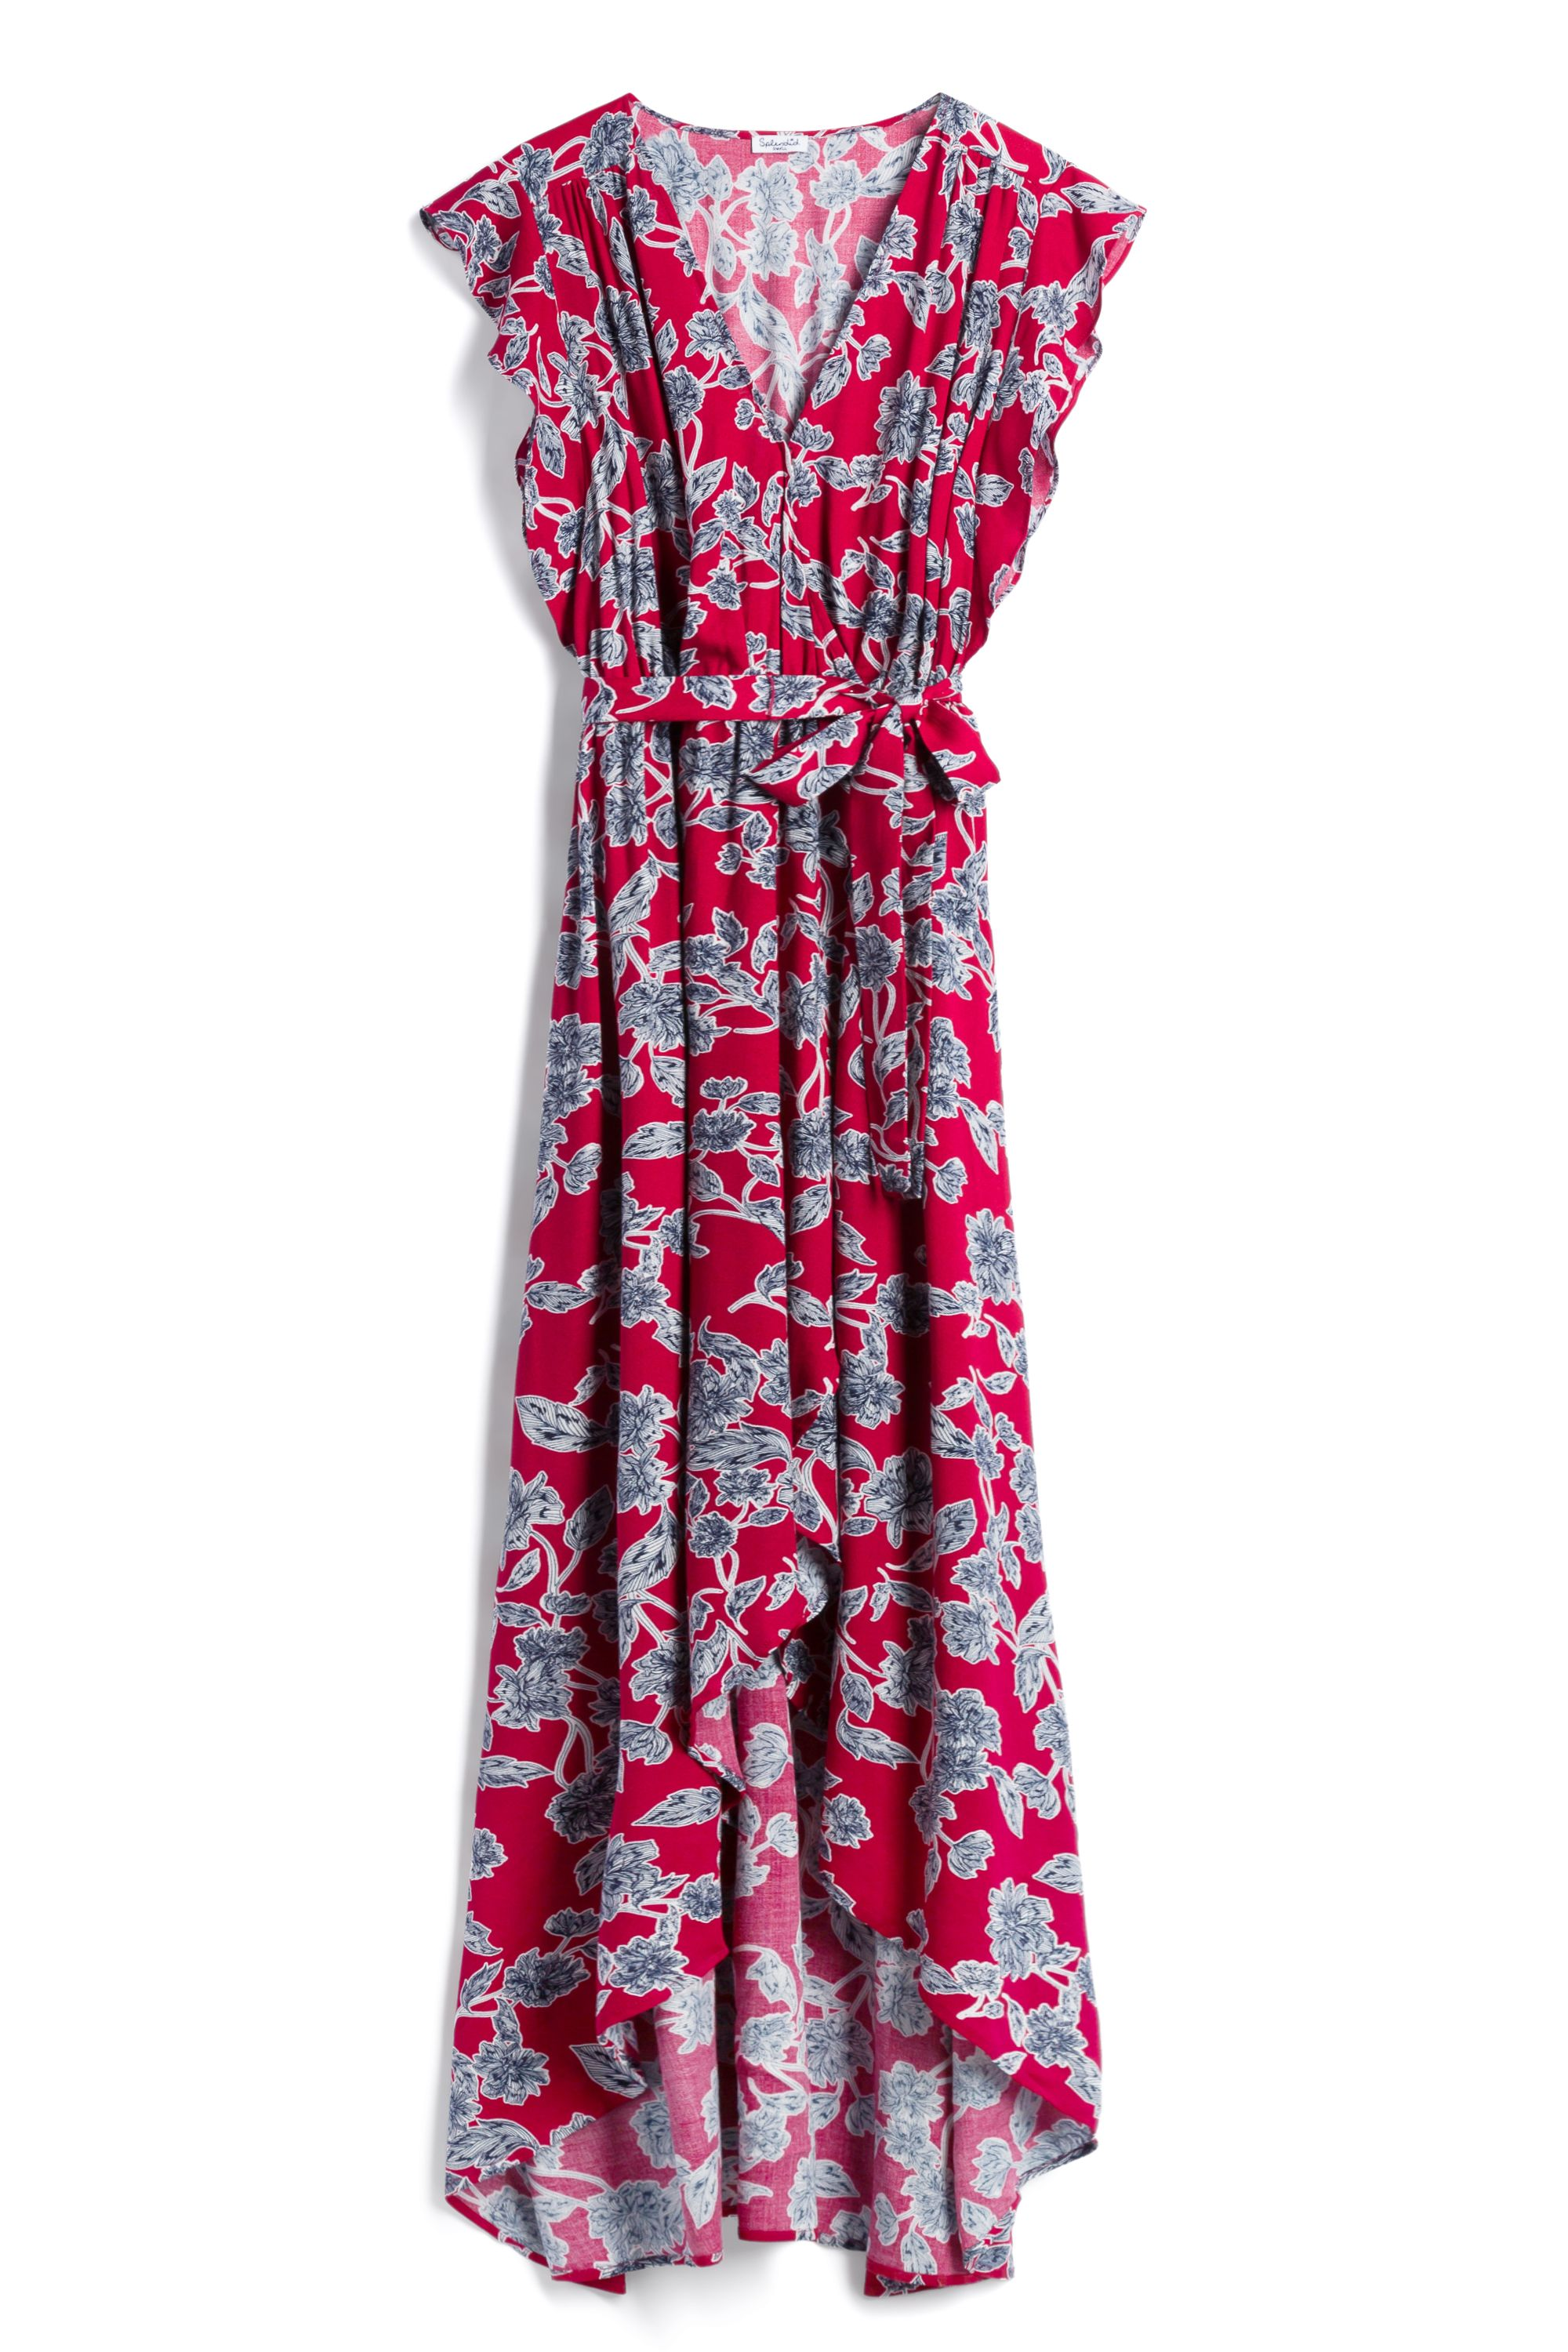 0b77c7773de Floral maxi dress from Stitch Fix.  ad    When you sign up for Stitch Fix